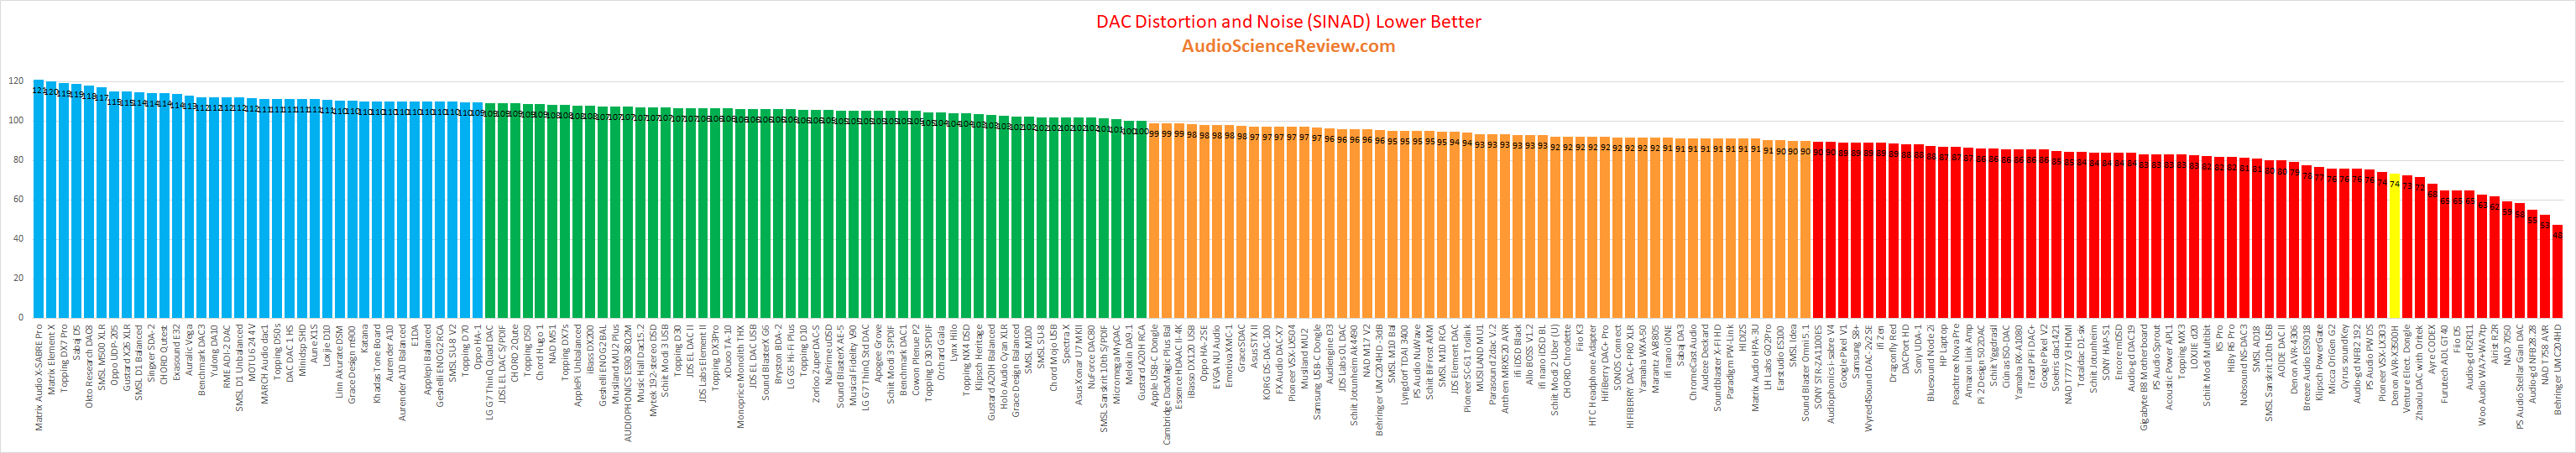 Best DACs in Home Theater AVR Review.png